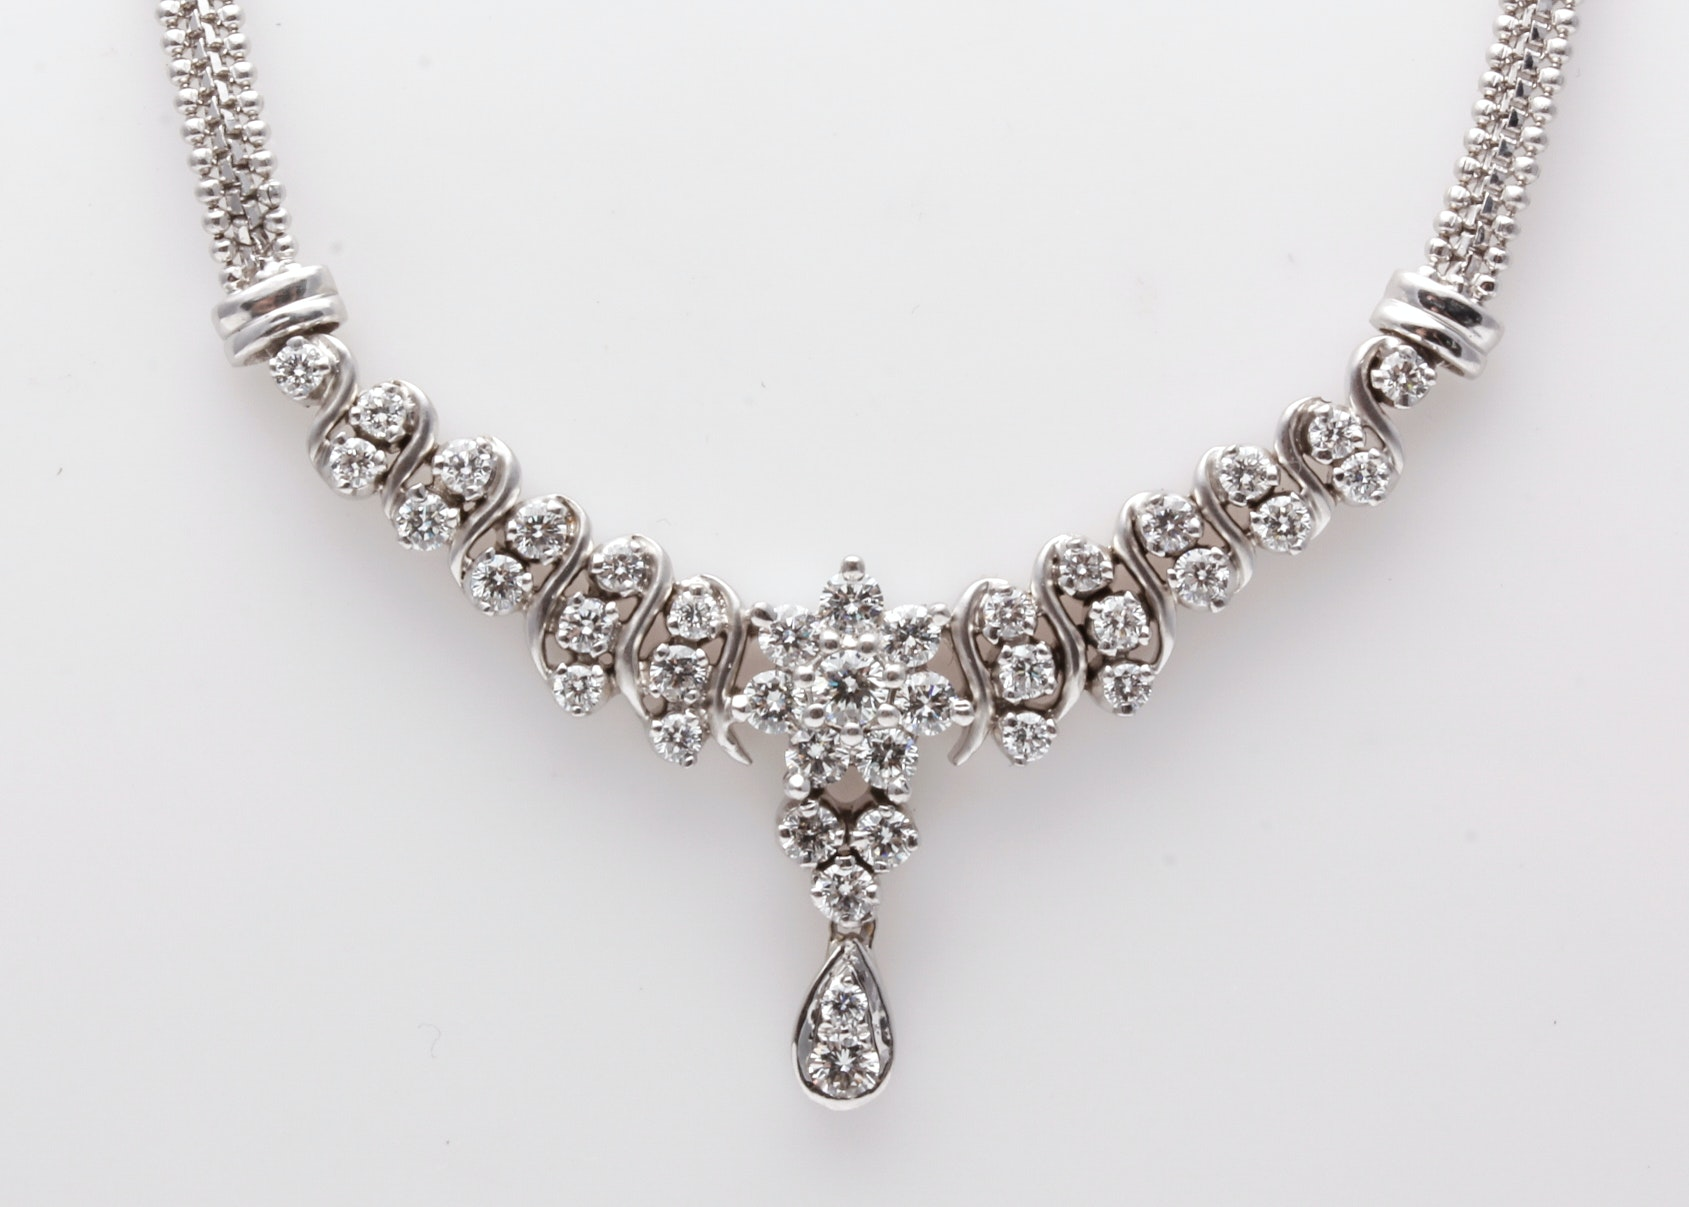 18K White Gold 1.10 CTW Diamond Necklace with 14K White Gold Chain